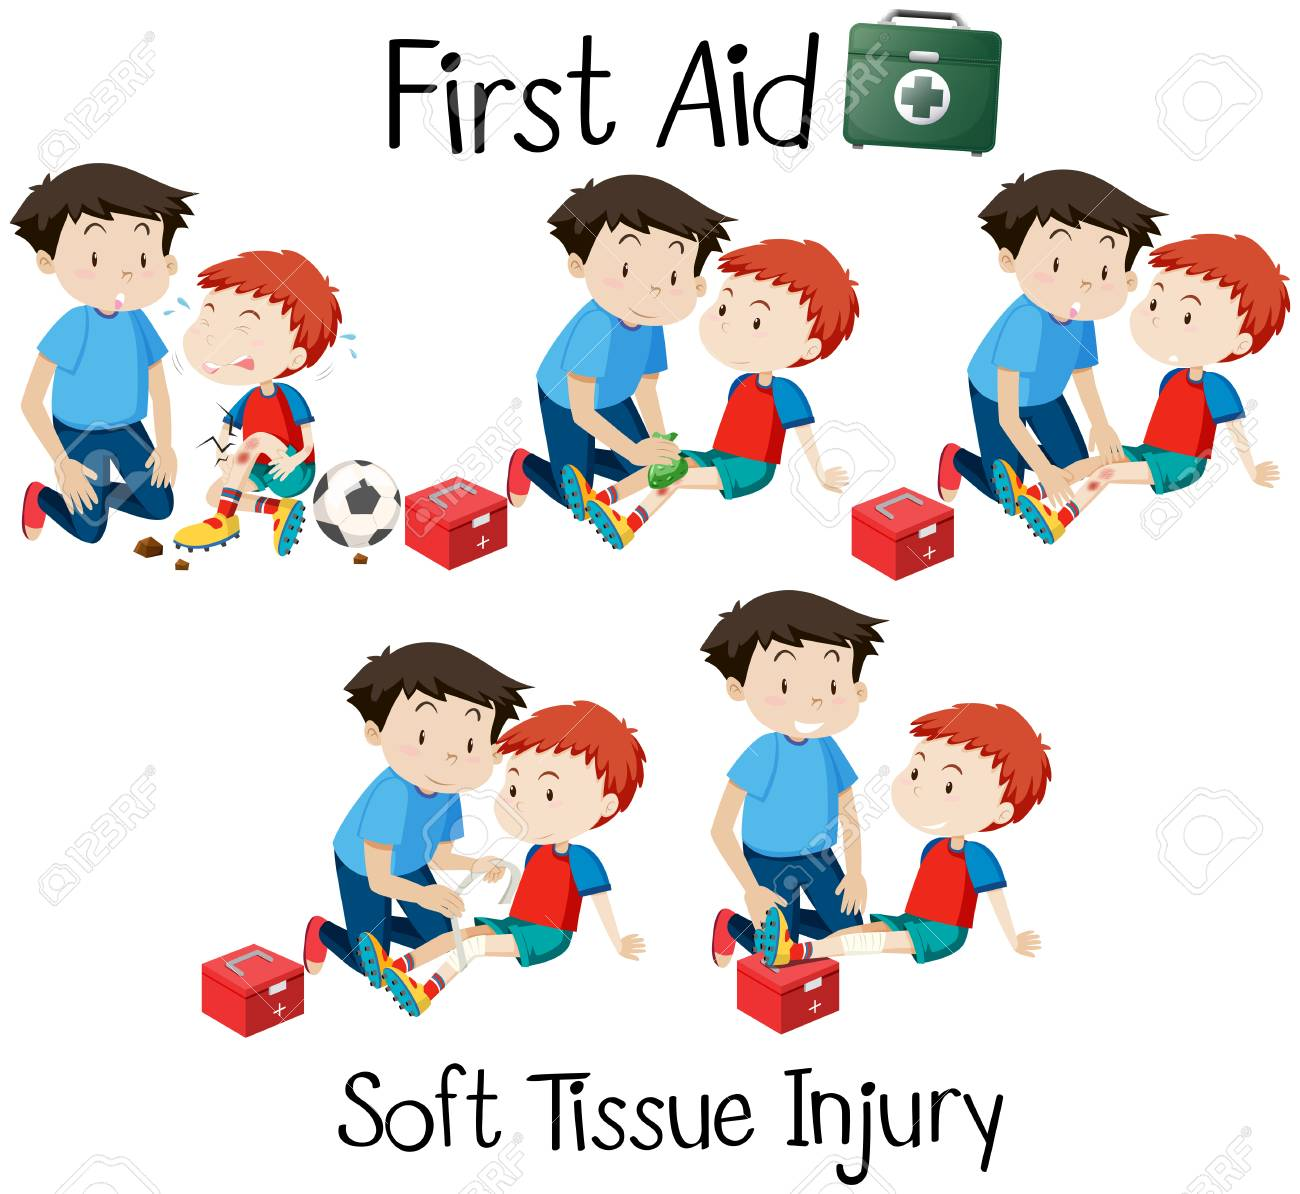 hight resolution of first aid soft tissue injury illustration stock vector 112115170